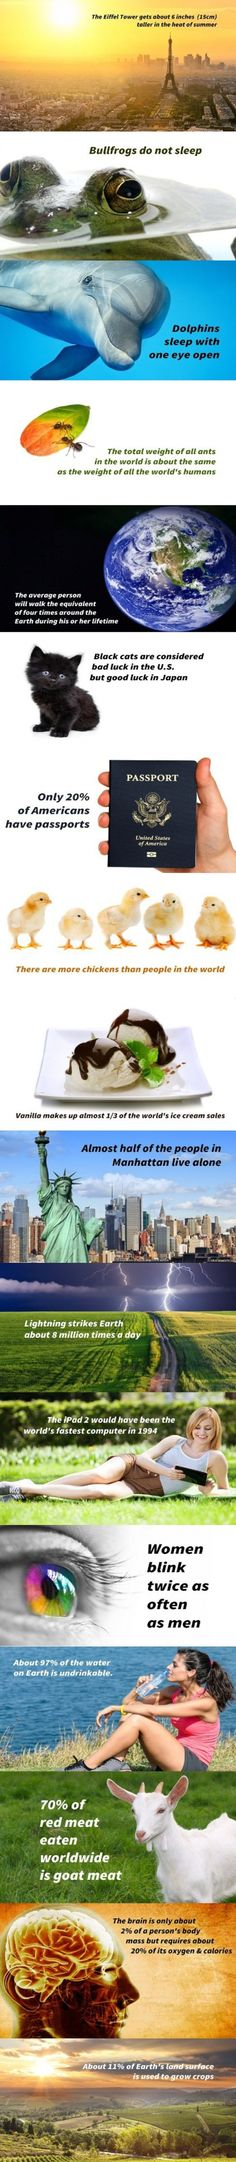 Weird things you should probably know...or maybe not....37% of statistics are made up...